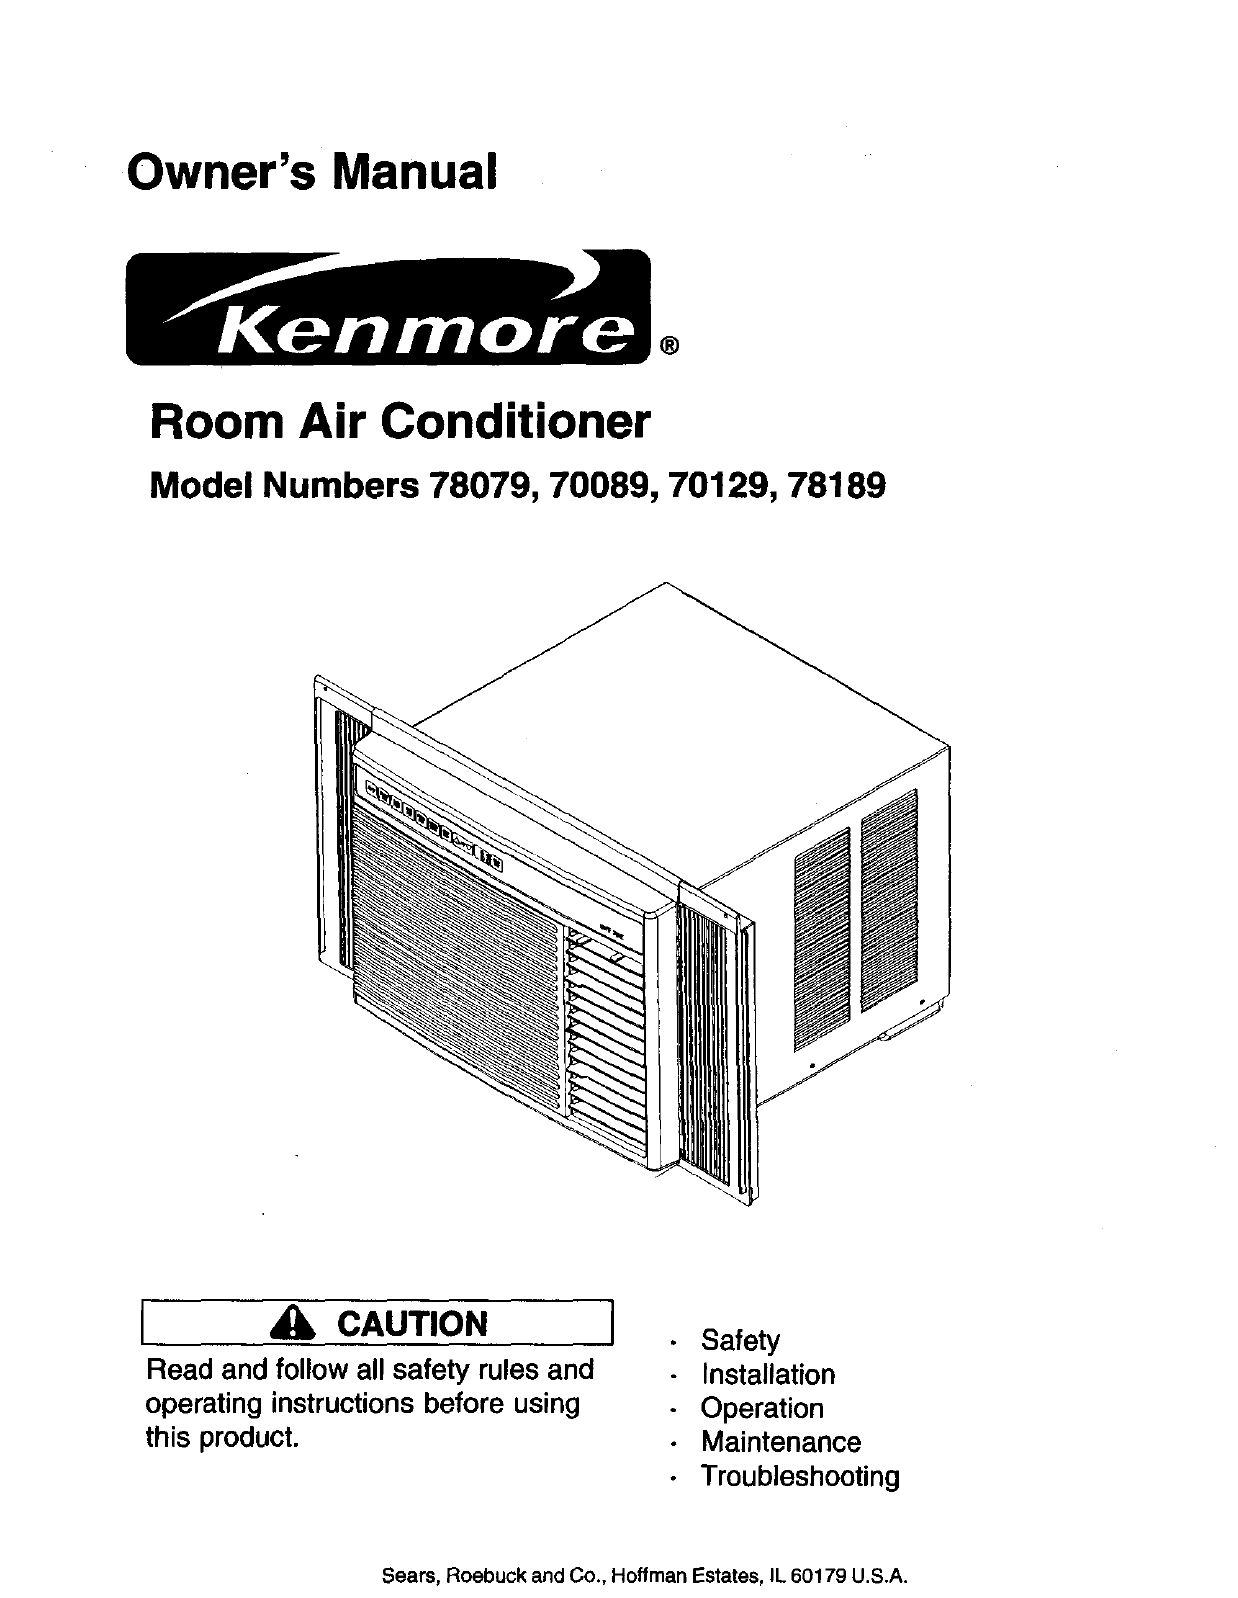 Owner's Manual. ®. Room Air Conditioner